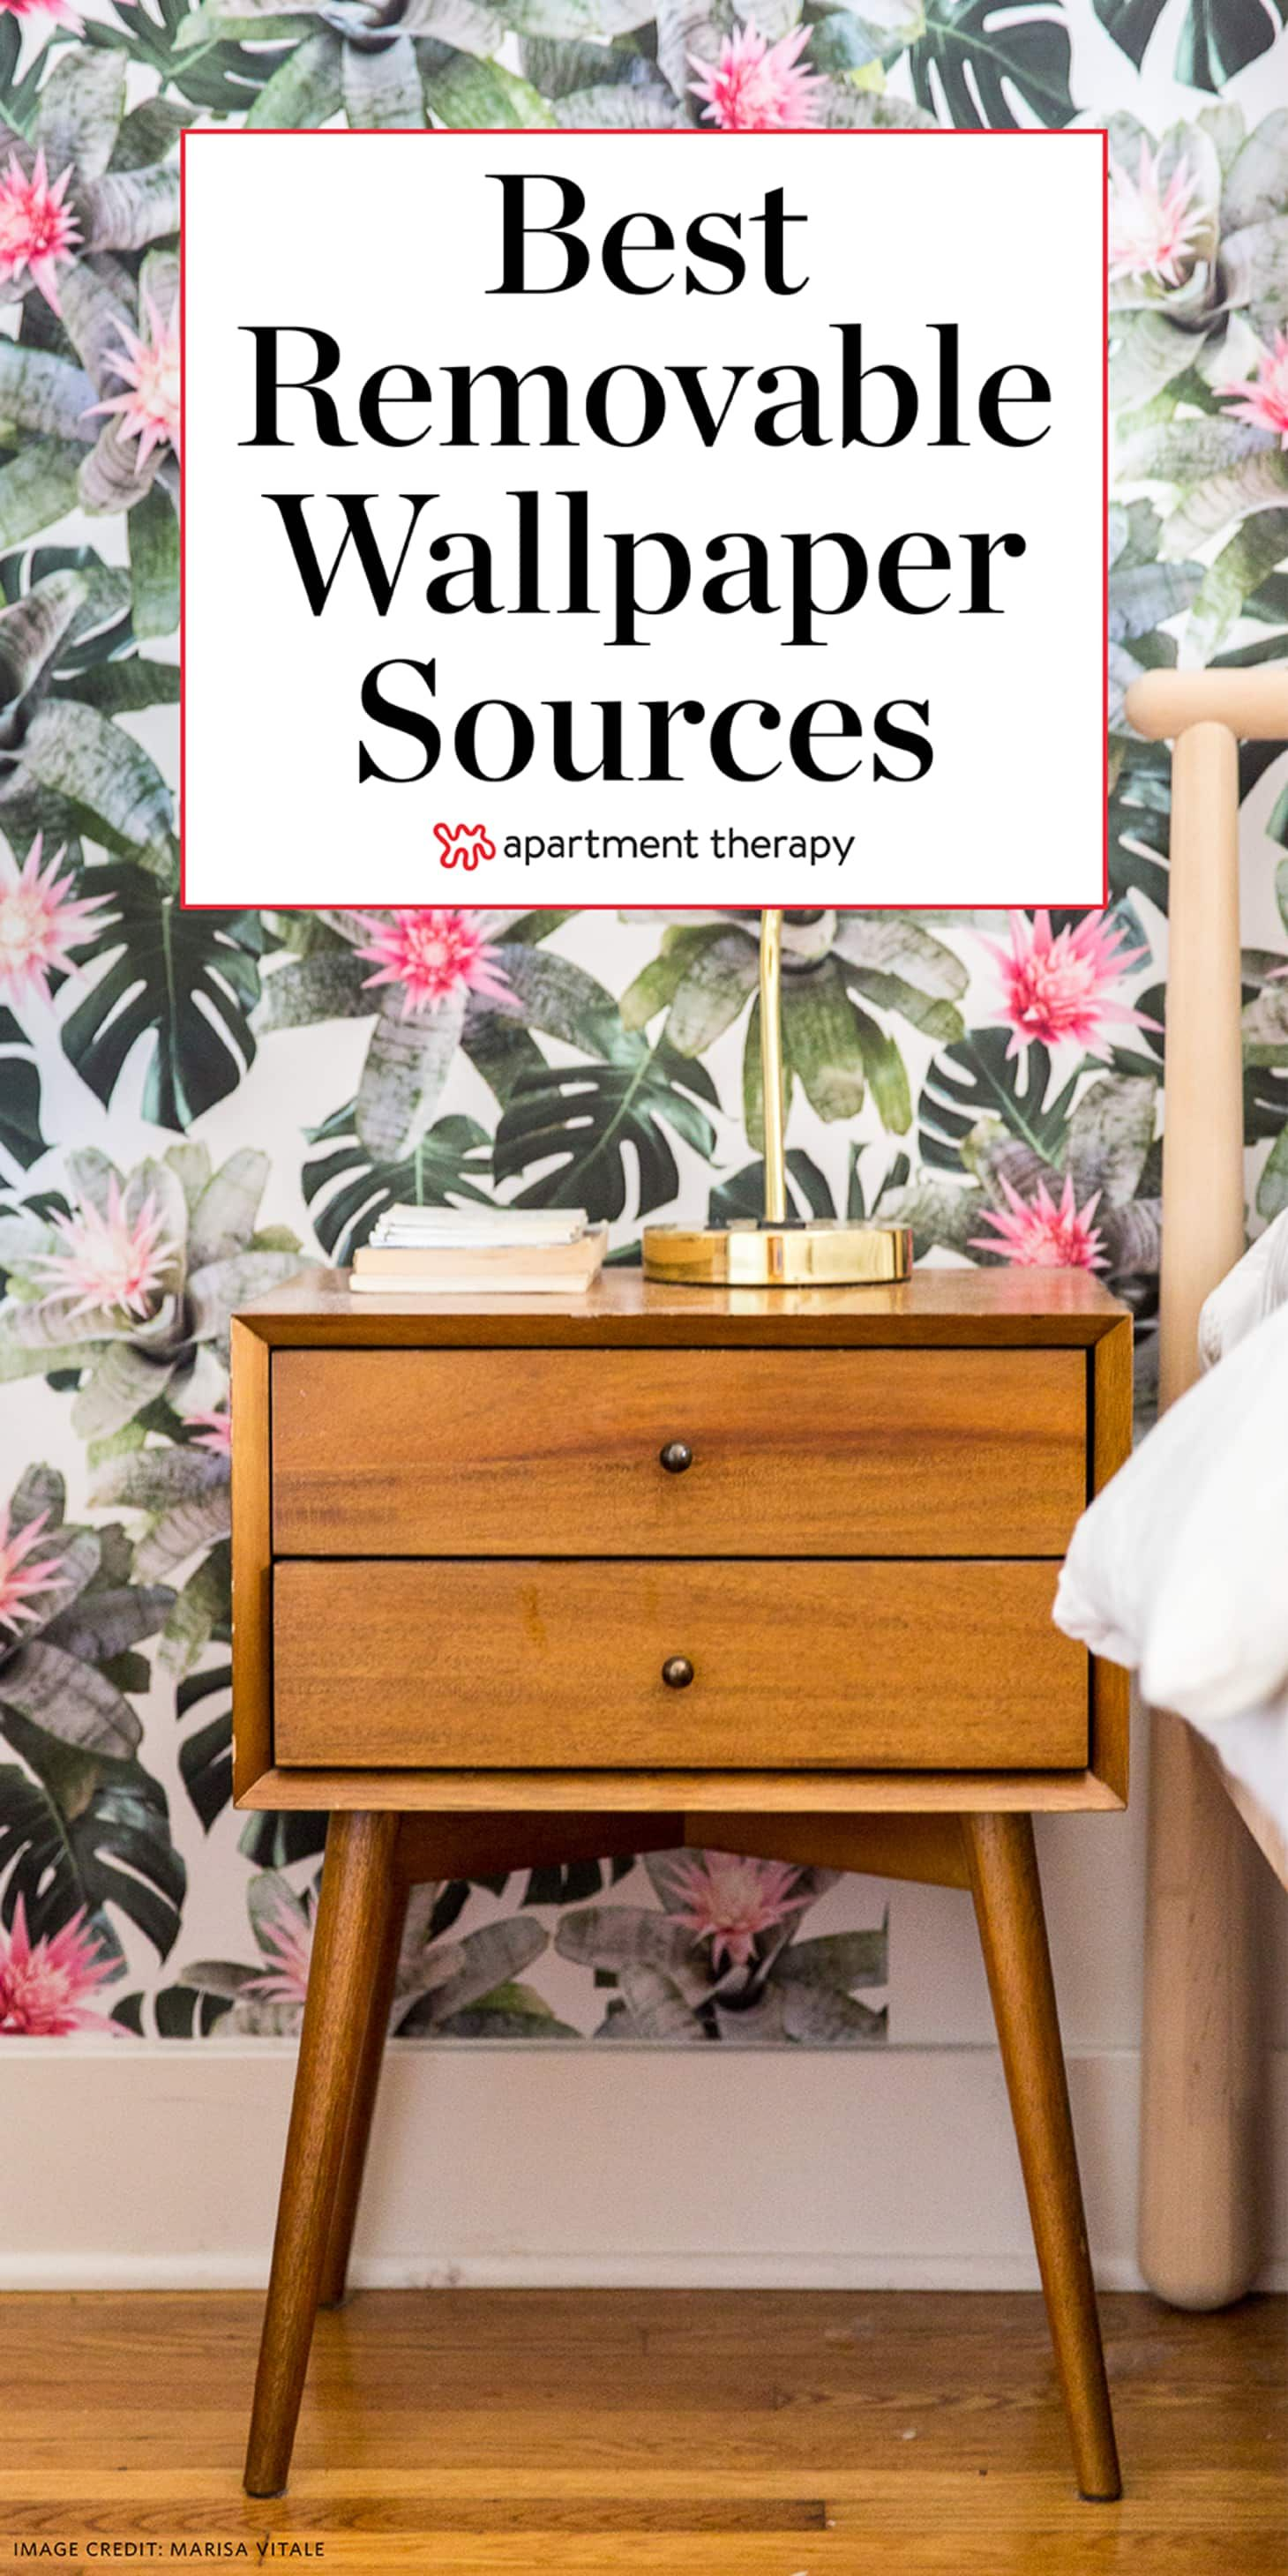 15 Removable Wallpaper Companies To Know Best Removable Wallpaper Home Wallpaper Removable Wallpaper